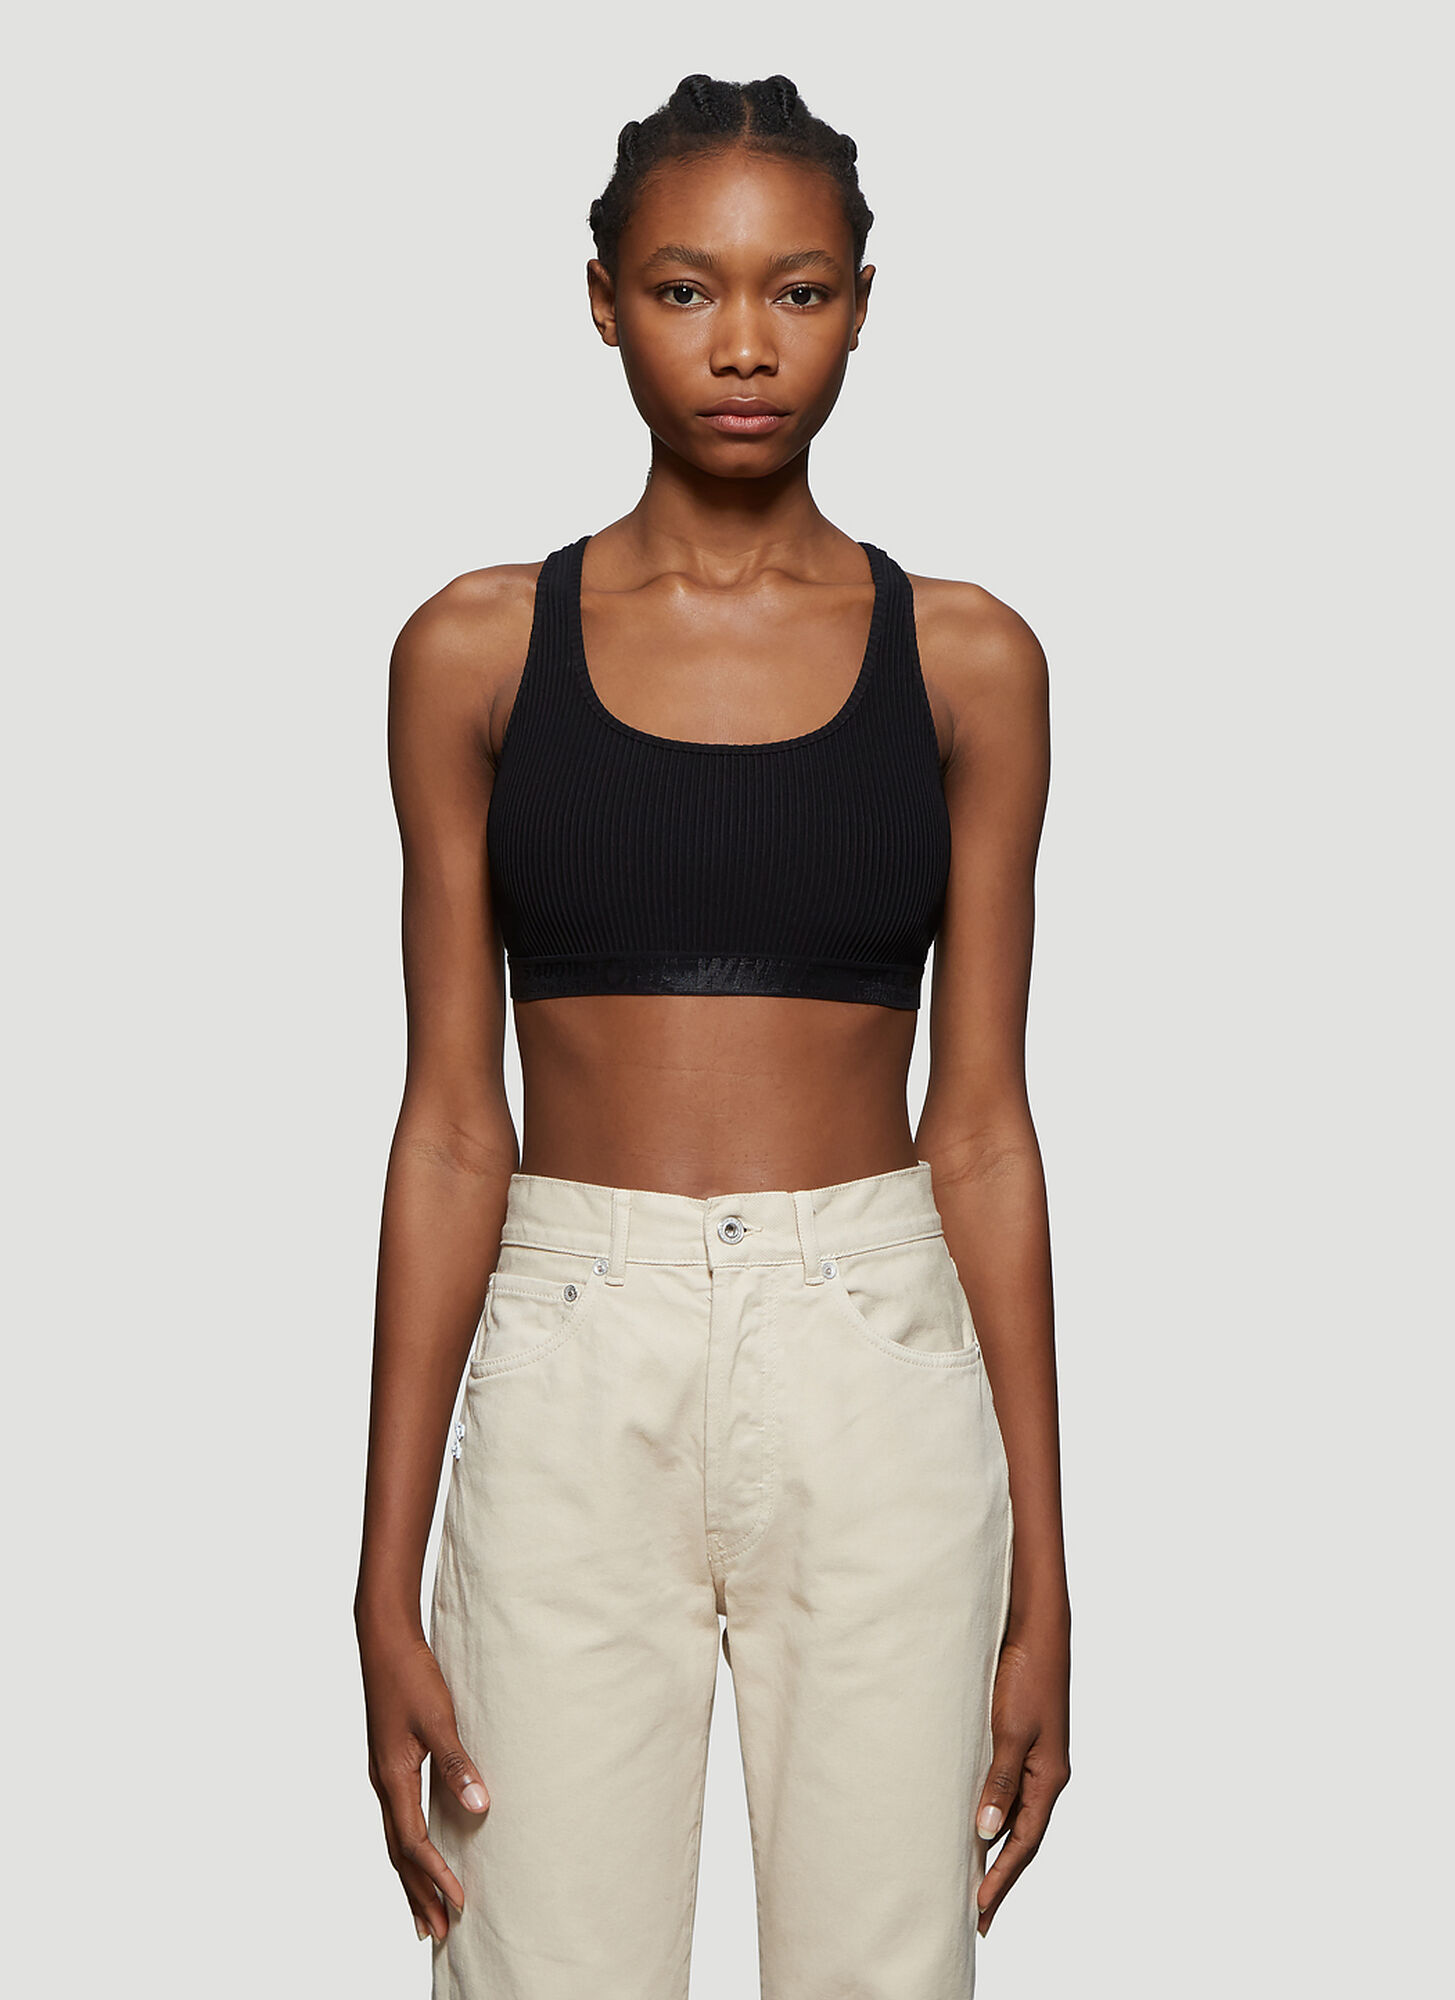 Off-White Logo Trim Bra Top in Black